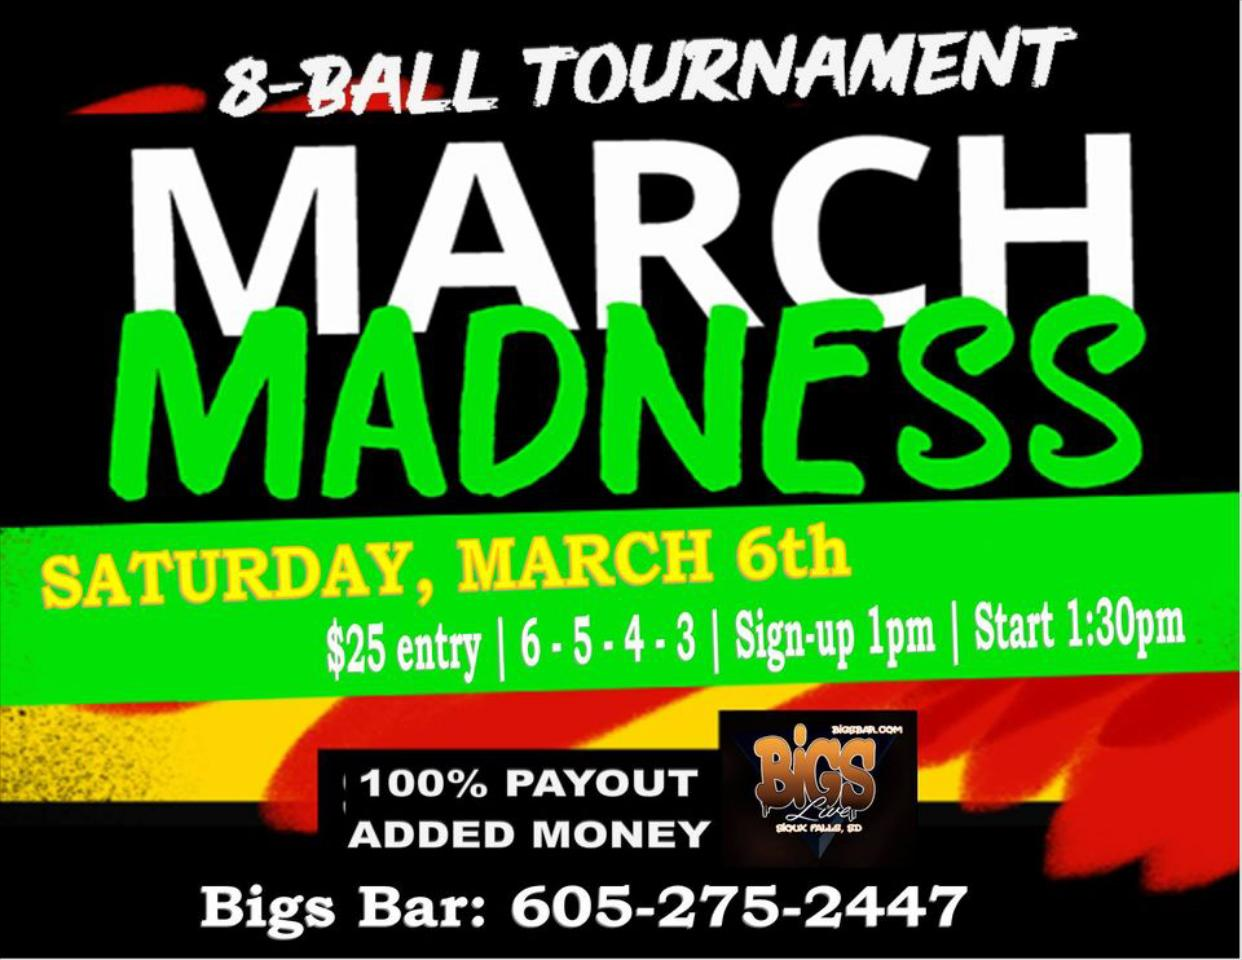 Bigs Bar 3110 W. 12th St. Sioux Falls, SD 57104